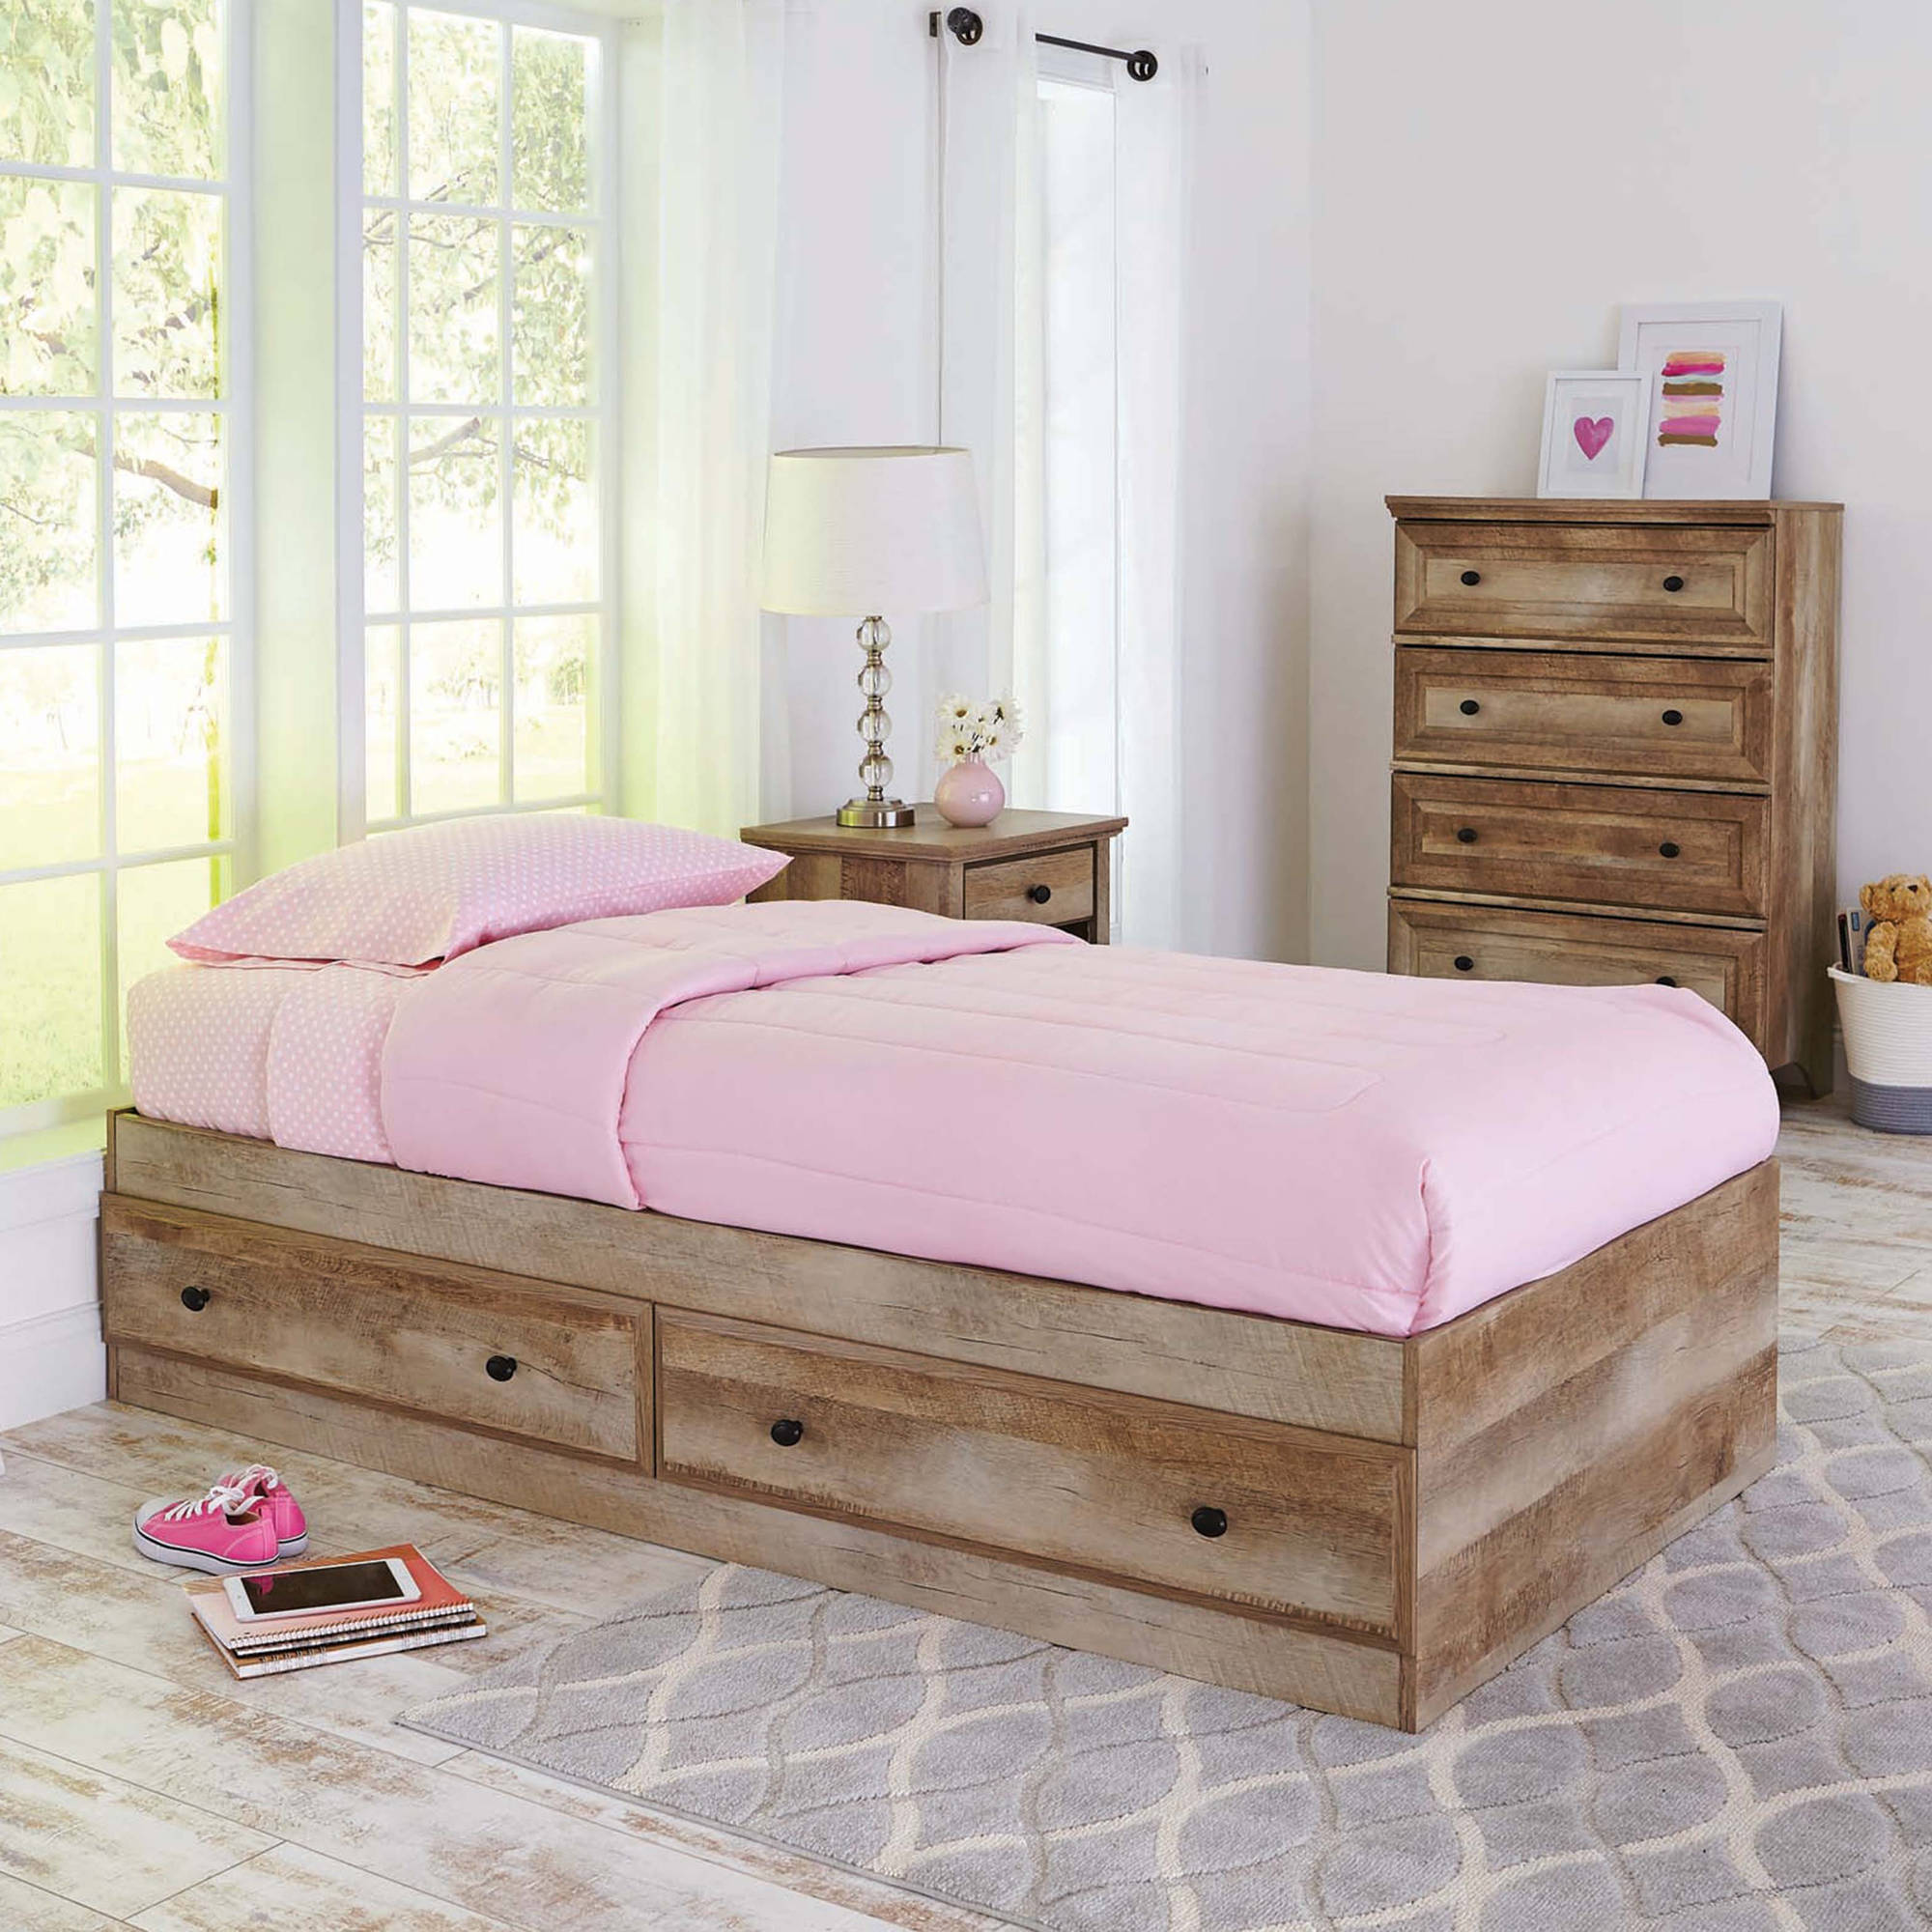 Better Homes and Gardens Crossmill Mates Twin Bed with Storage, Weathered Finish